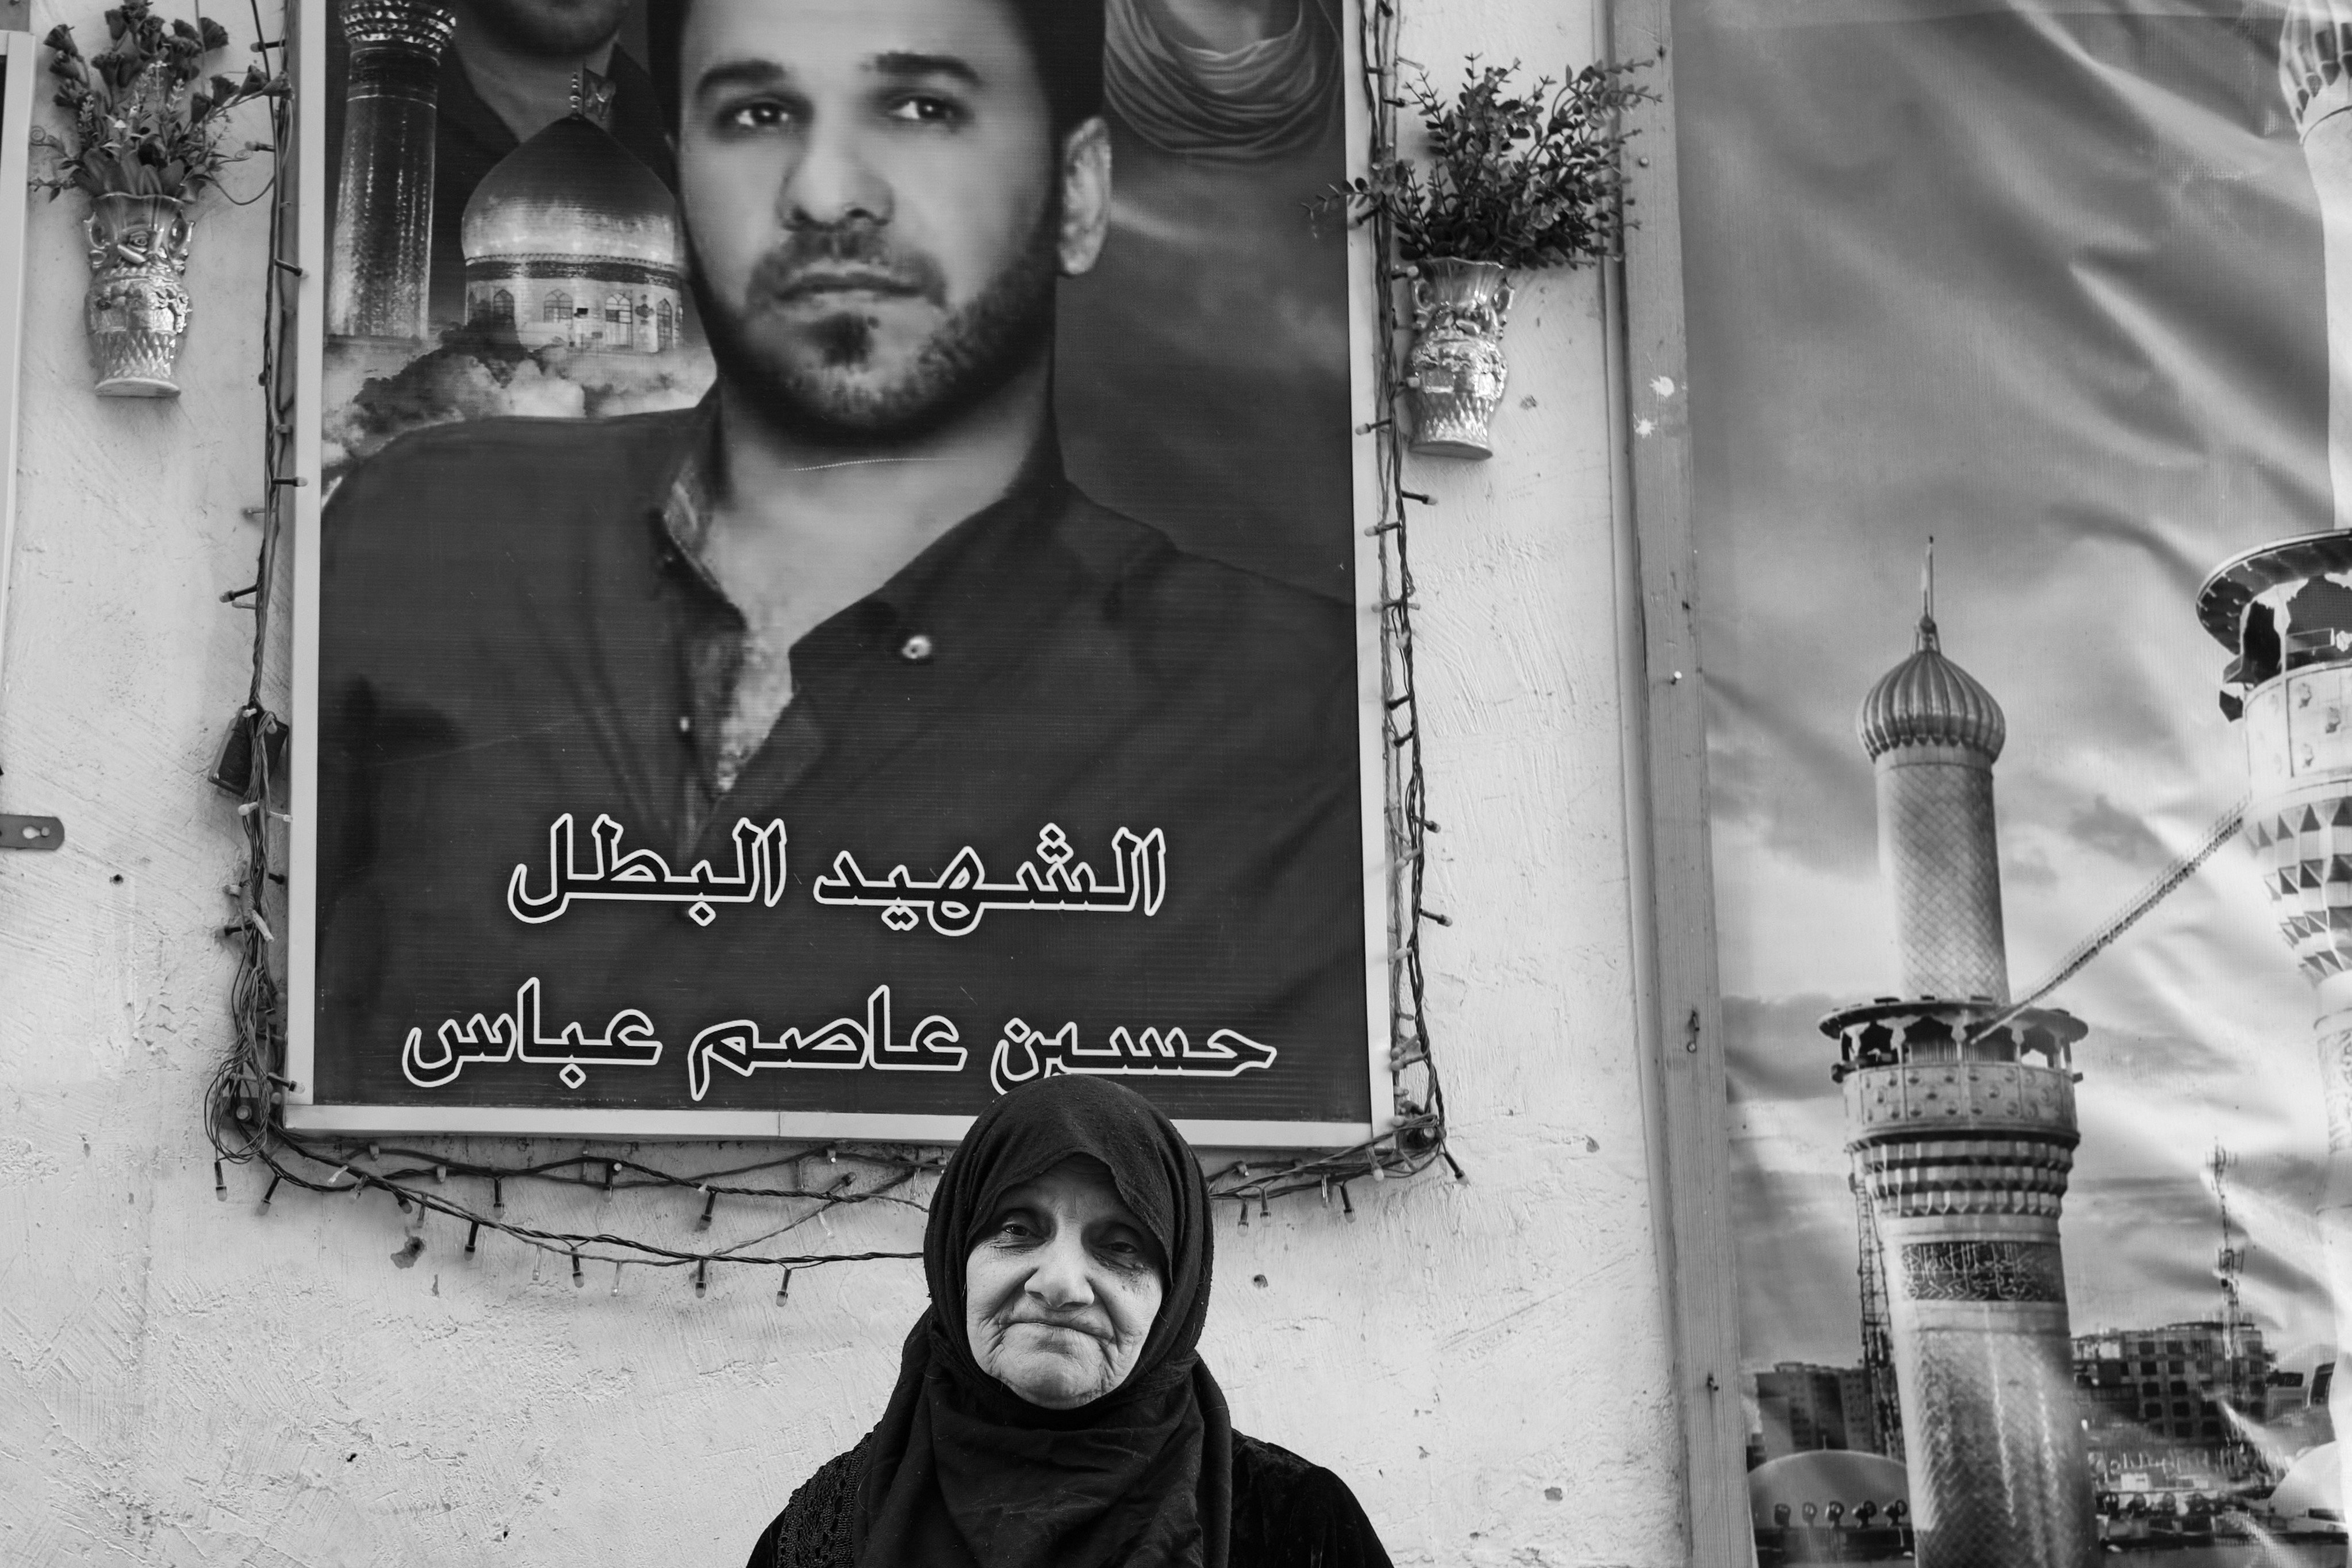 An Iraqi woman standing next to her maryred son's portrait in Baghdad on 25 February, 2021 (Photo by Nabil Salih)